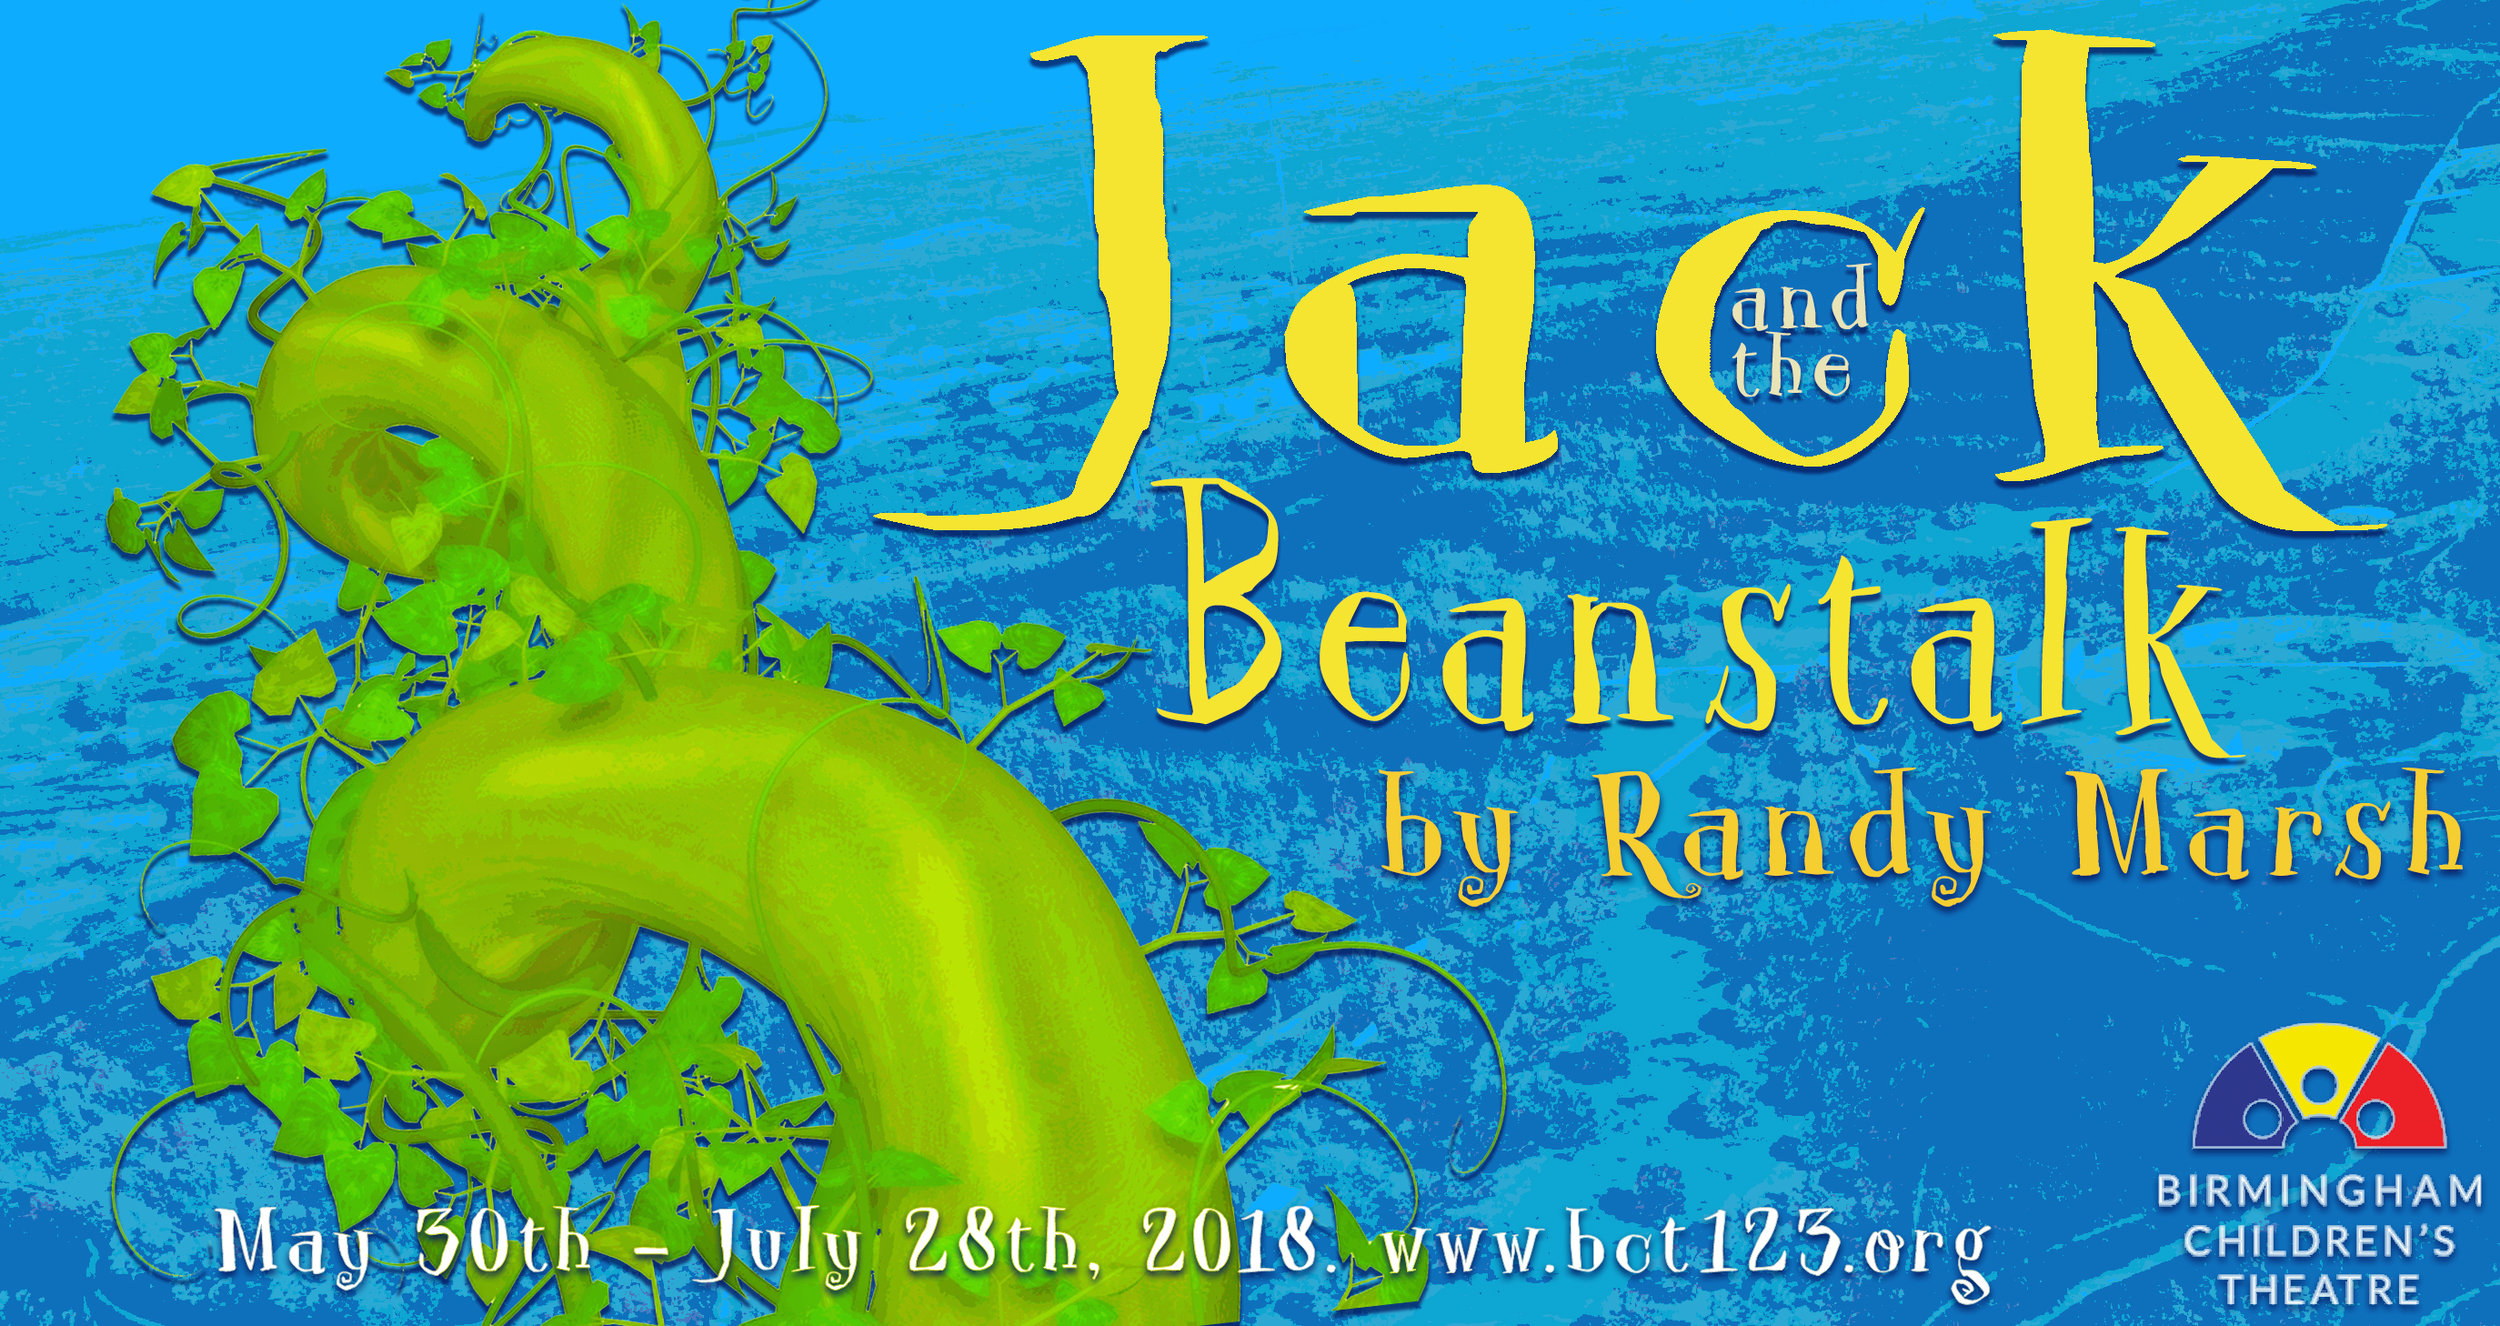 Jack and the Beanstalk  will play at the Birmingham-Jefferson Convention Complex July 10th - 28th. Tuesdays - Saturdays at 10:00am. Recommended for ages 2-6 years.